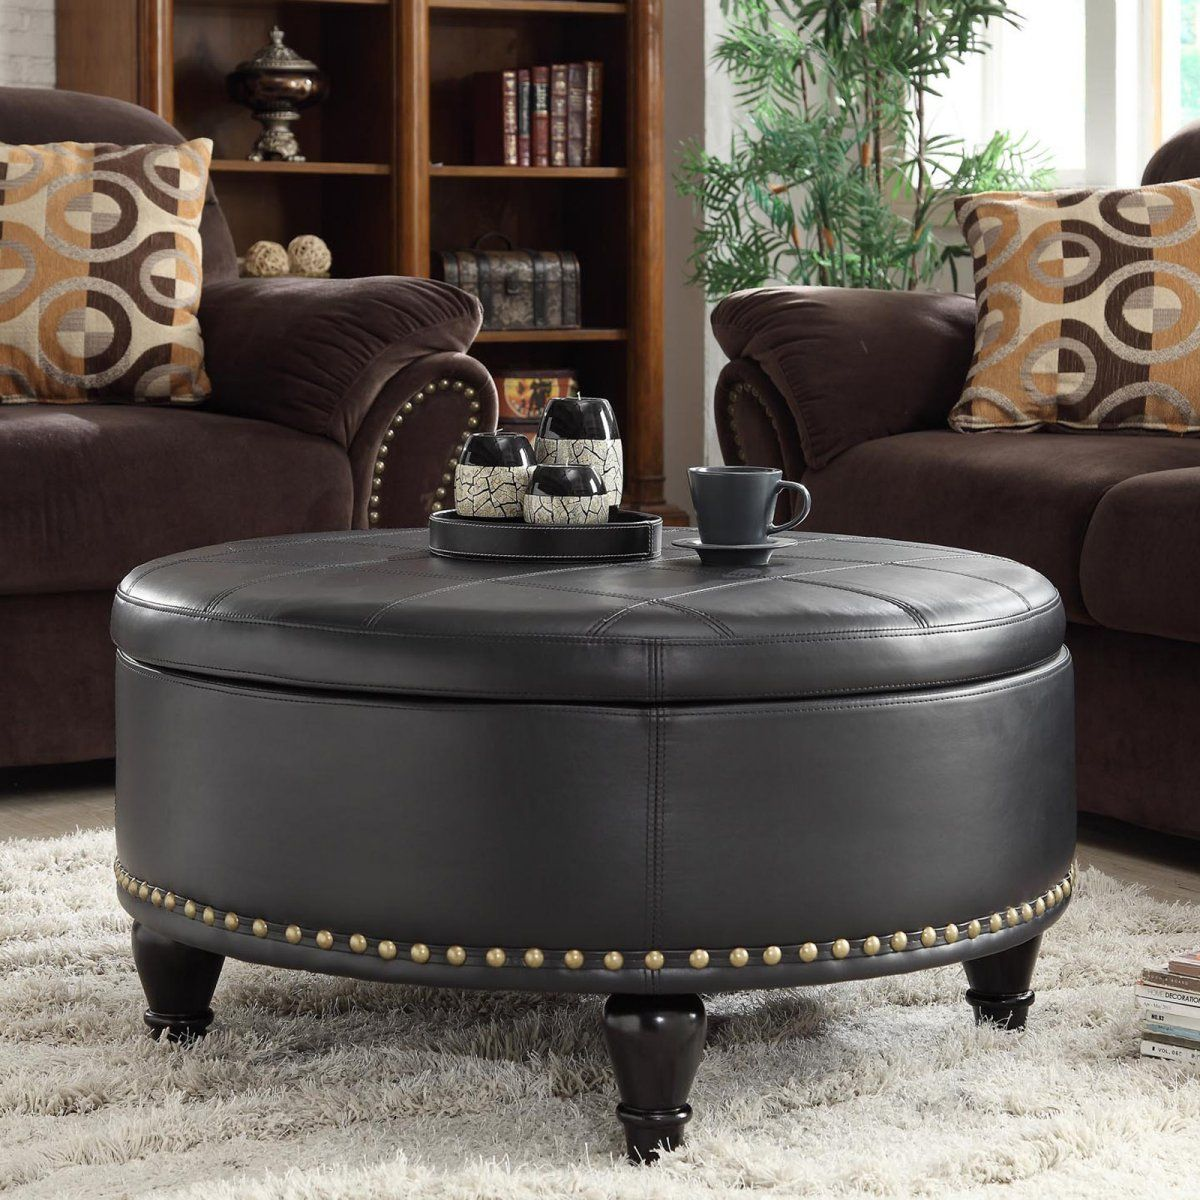 Brown Leather Coffee Table Ottoman Chocolate Brown Sofa Living Room Ideas Combined With Round